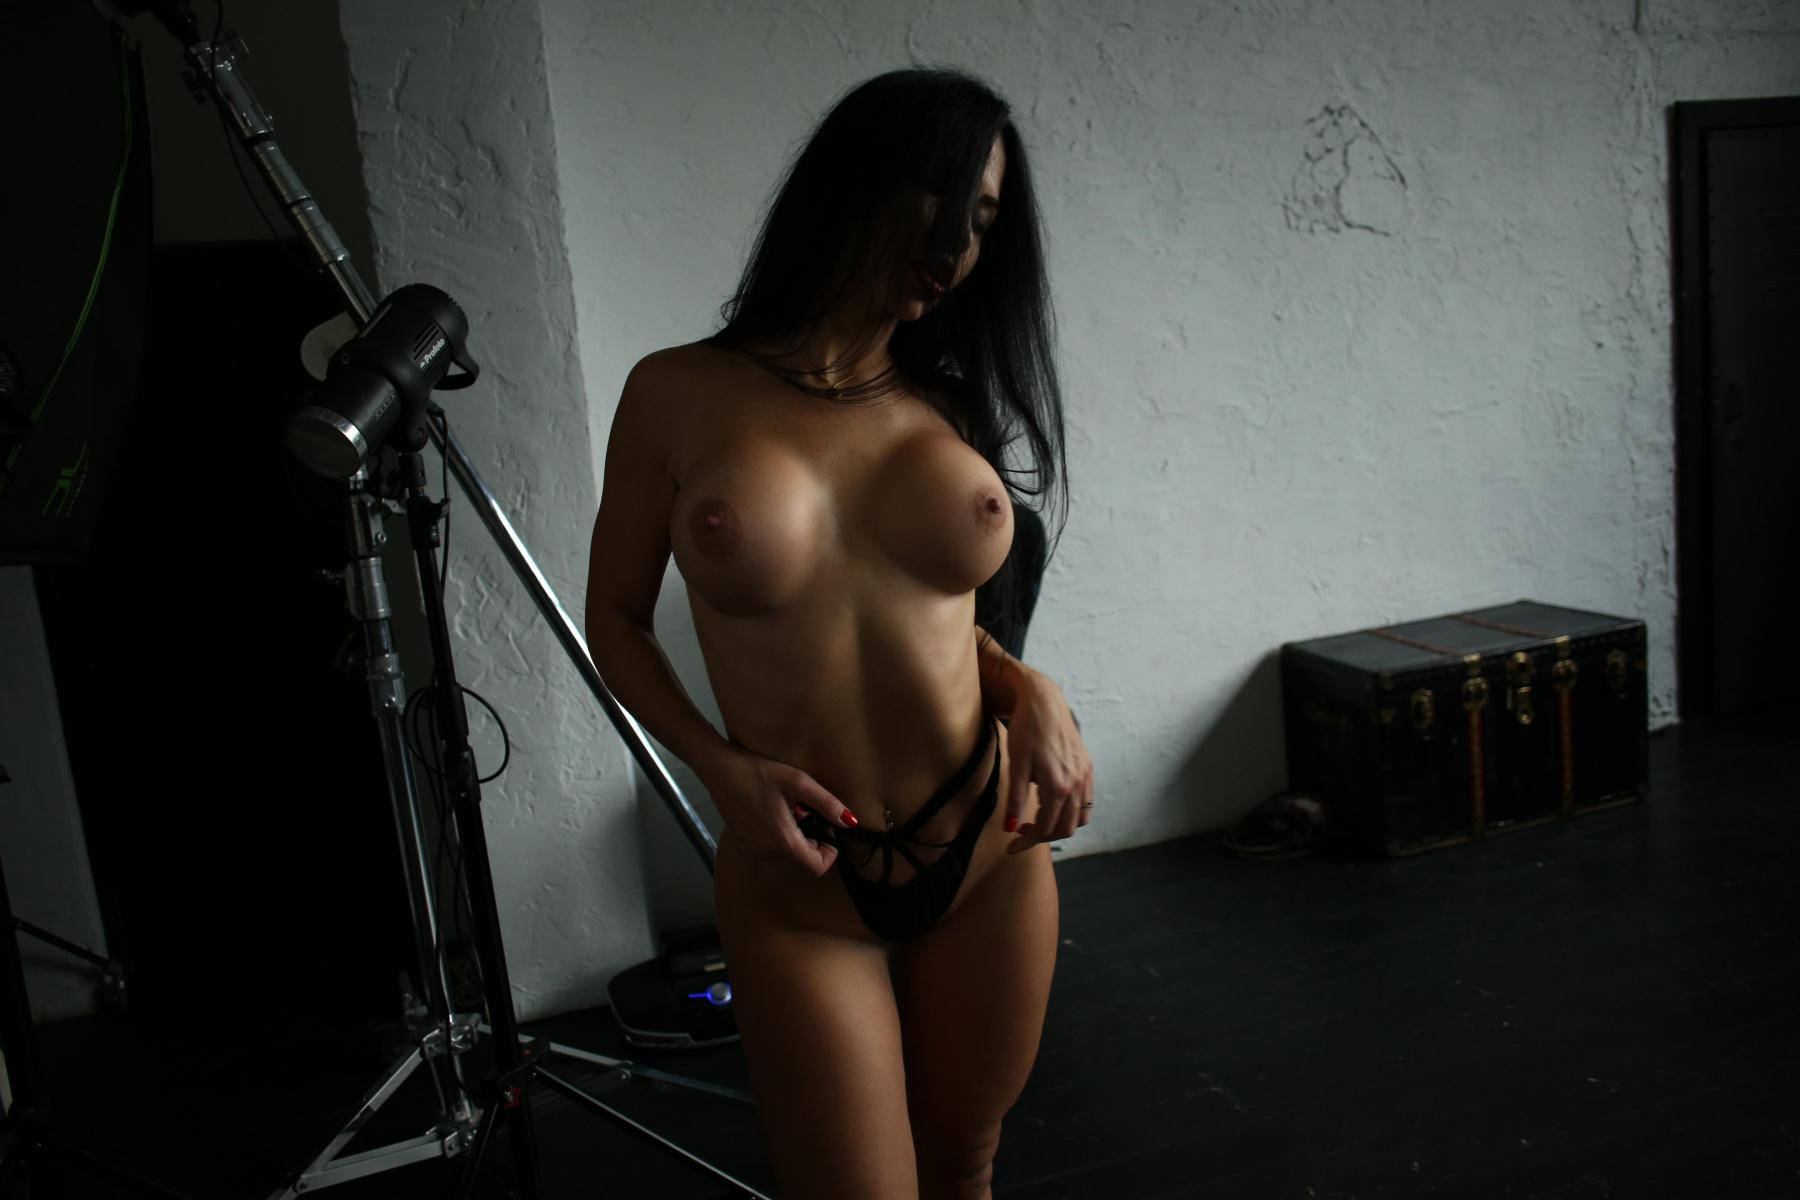 Yana Sexy Brunette's Tits Porn OnlyFans Leaked Nudes 45